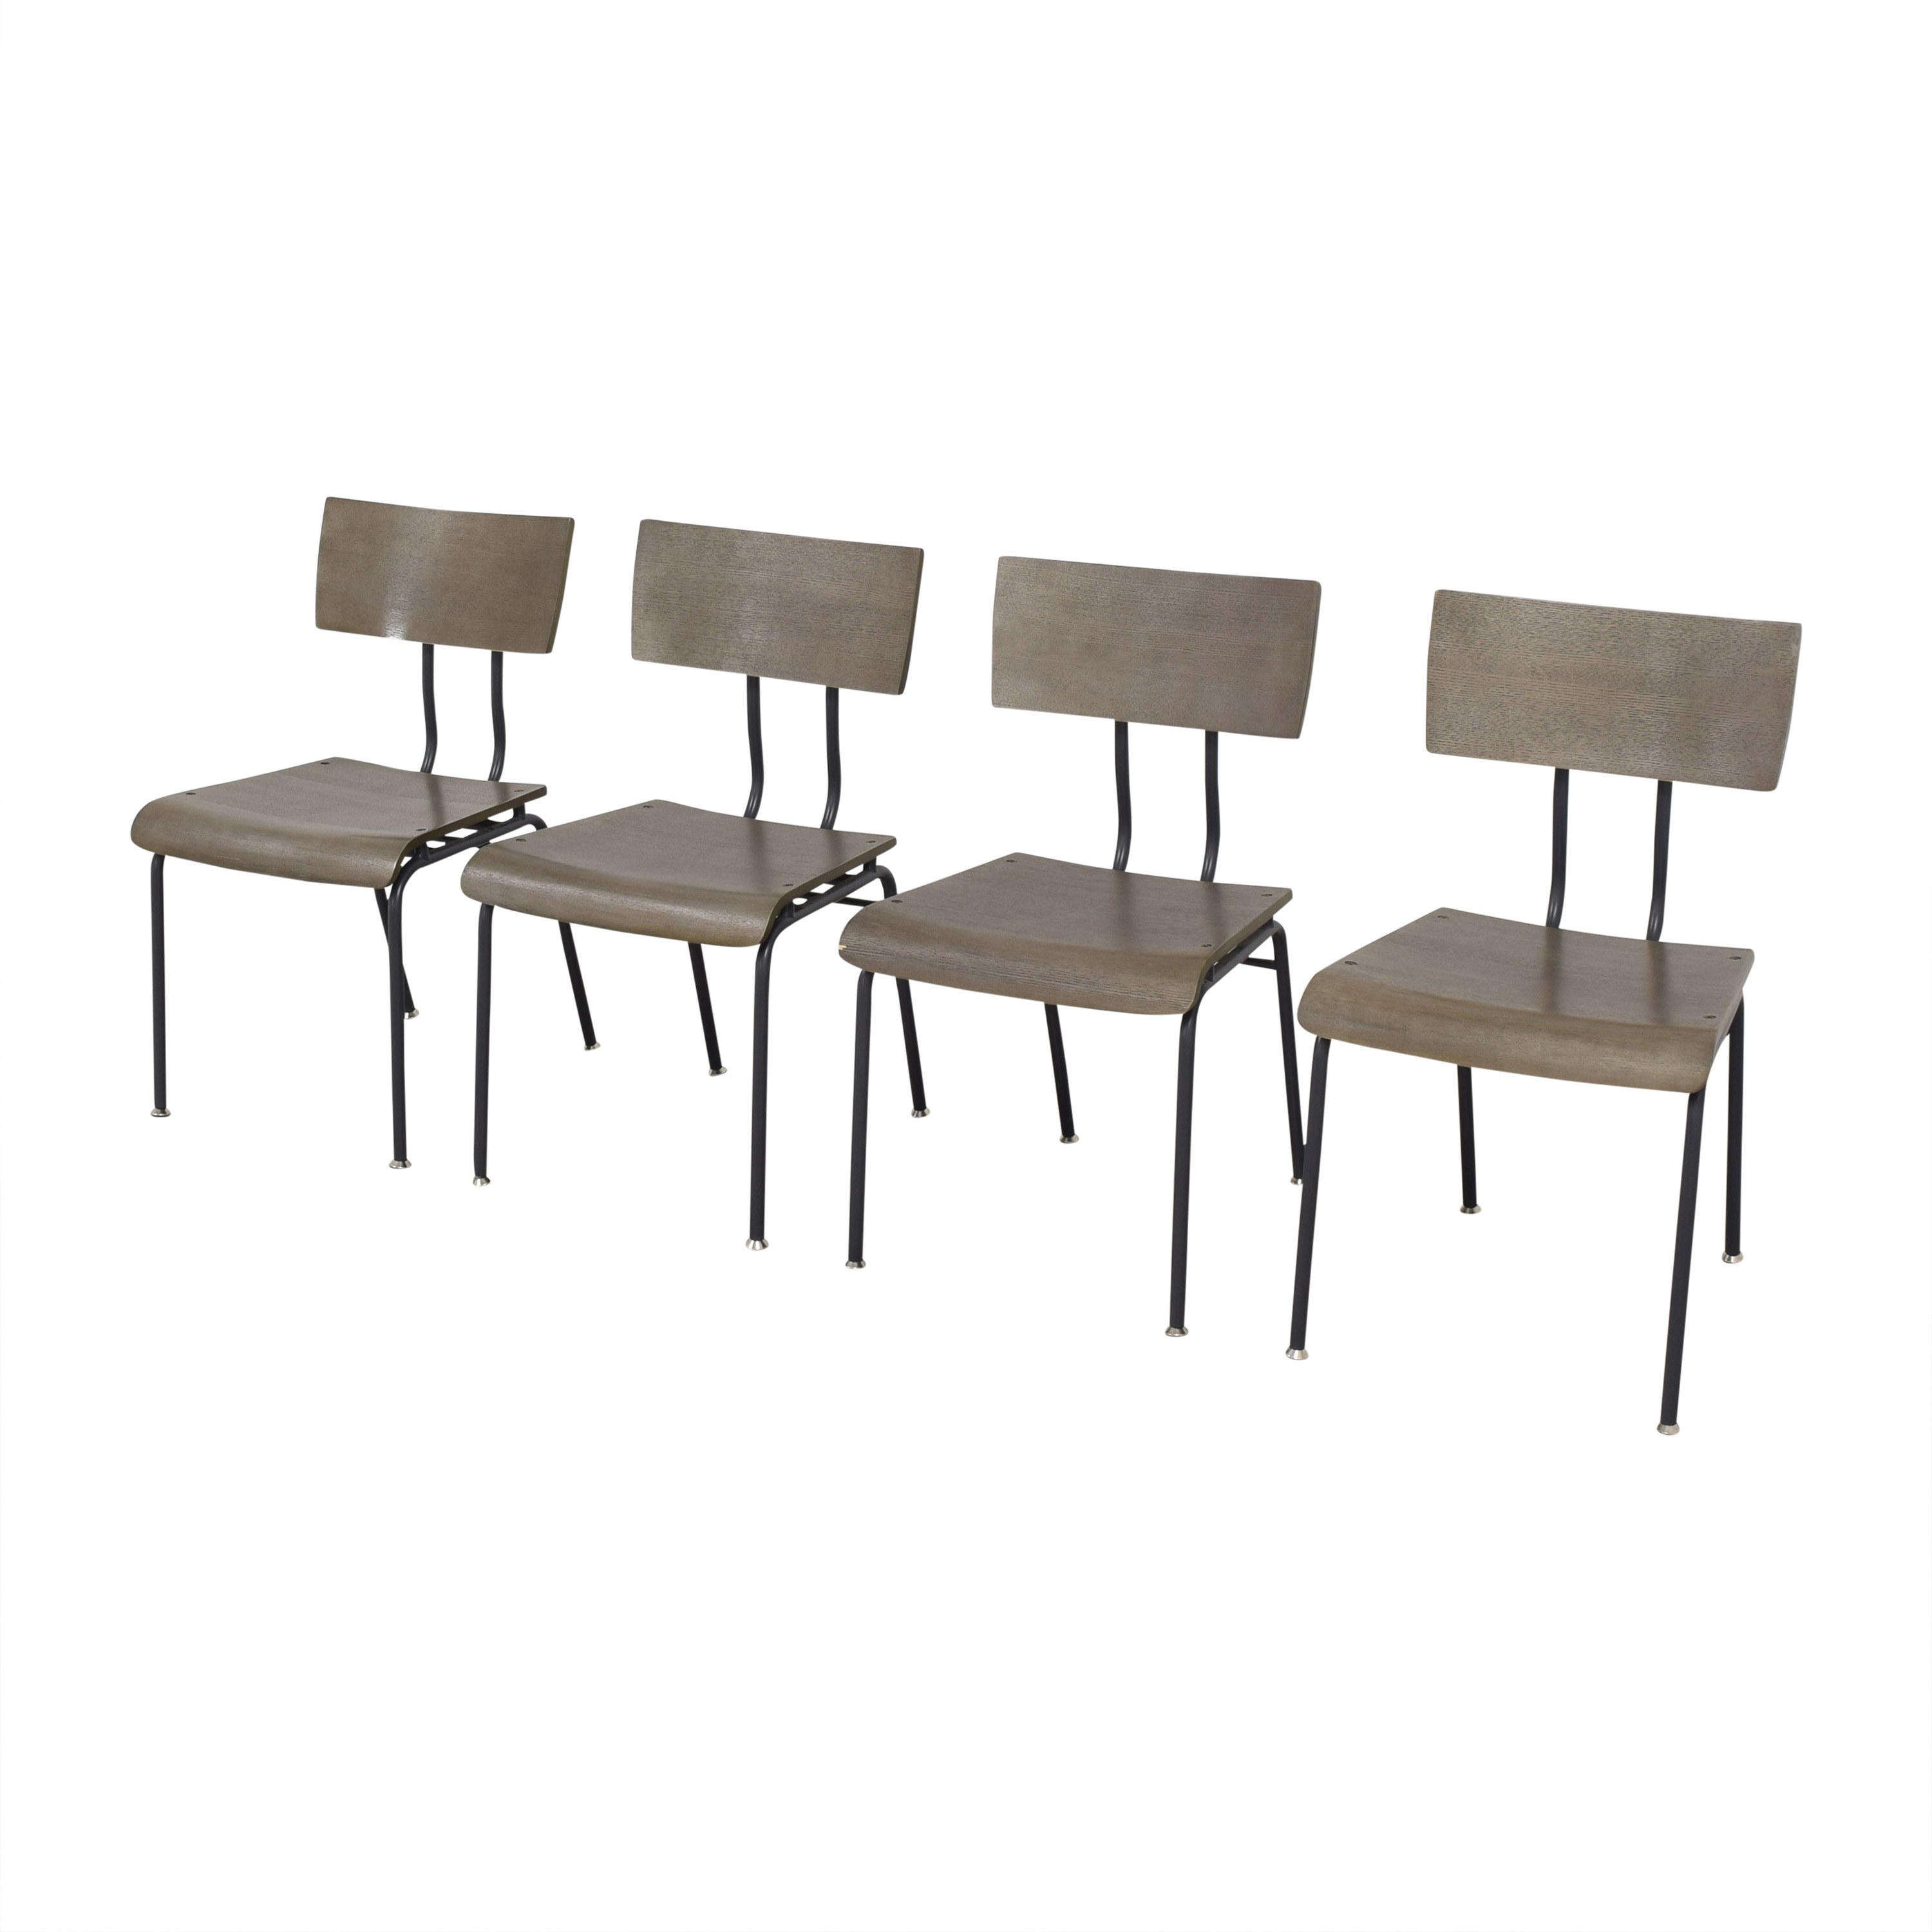 Crate & Barrel Crate & Barrel Scholar Dining Chairs ct